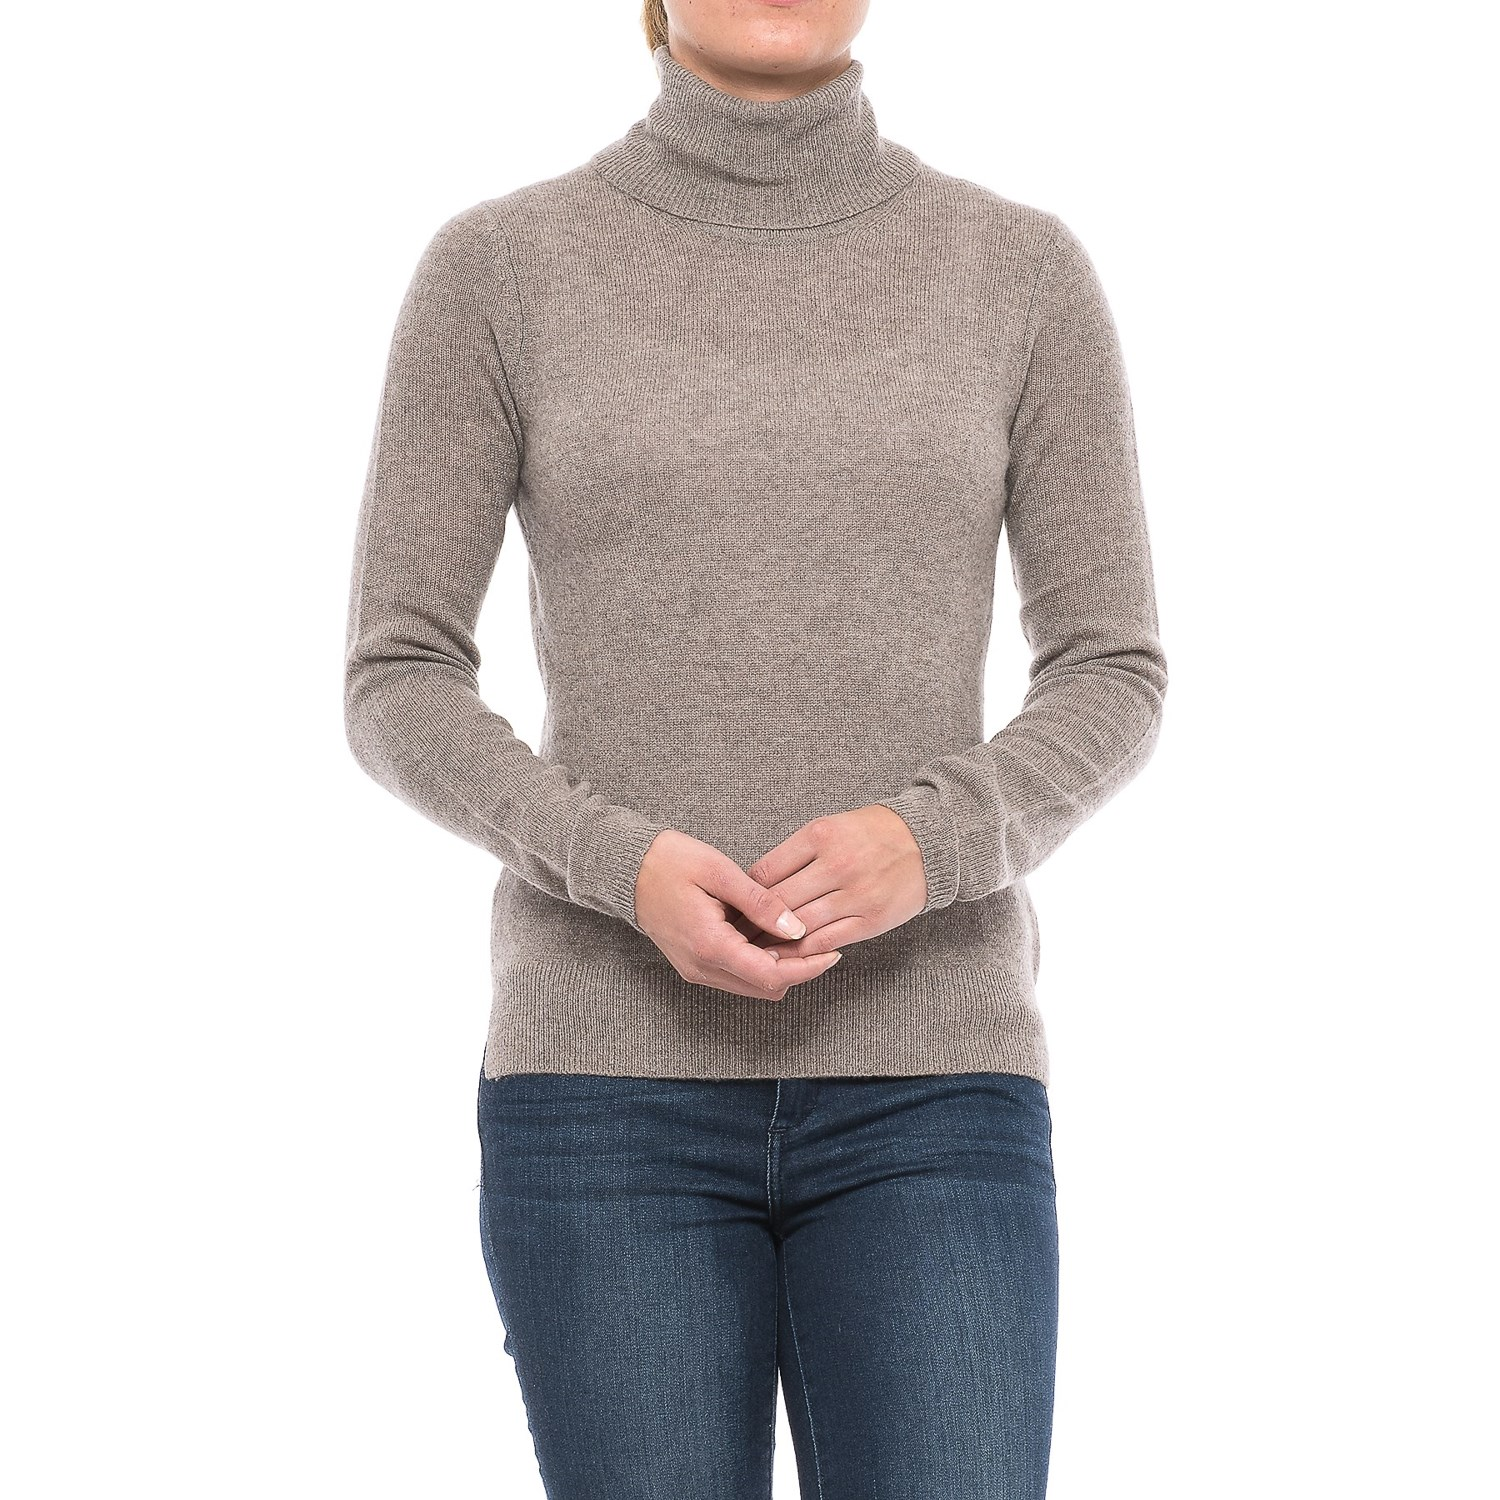 Adrienne Vittadini Cashmere Turtleneck Sweater (For Women) - Save 45%